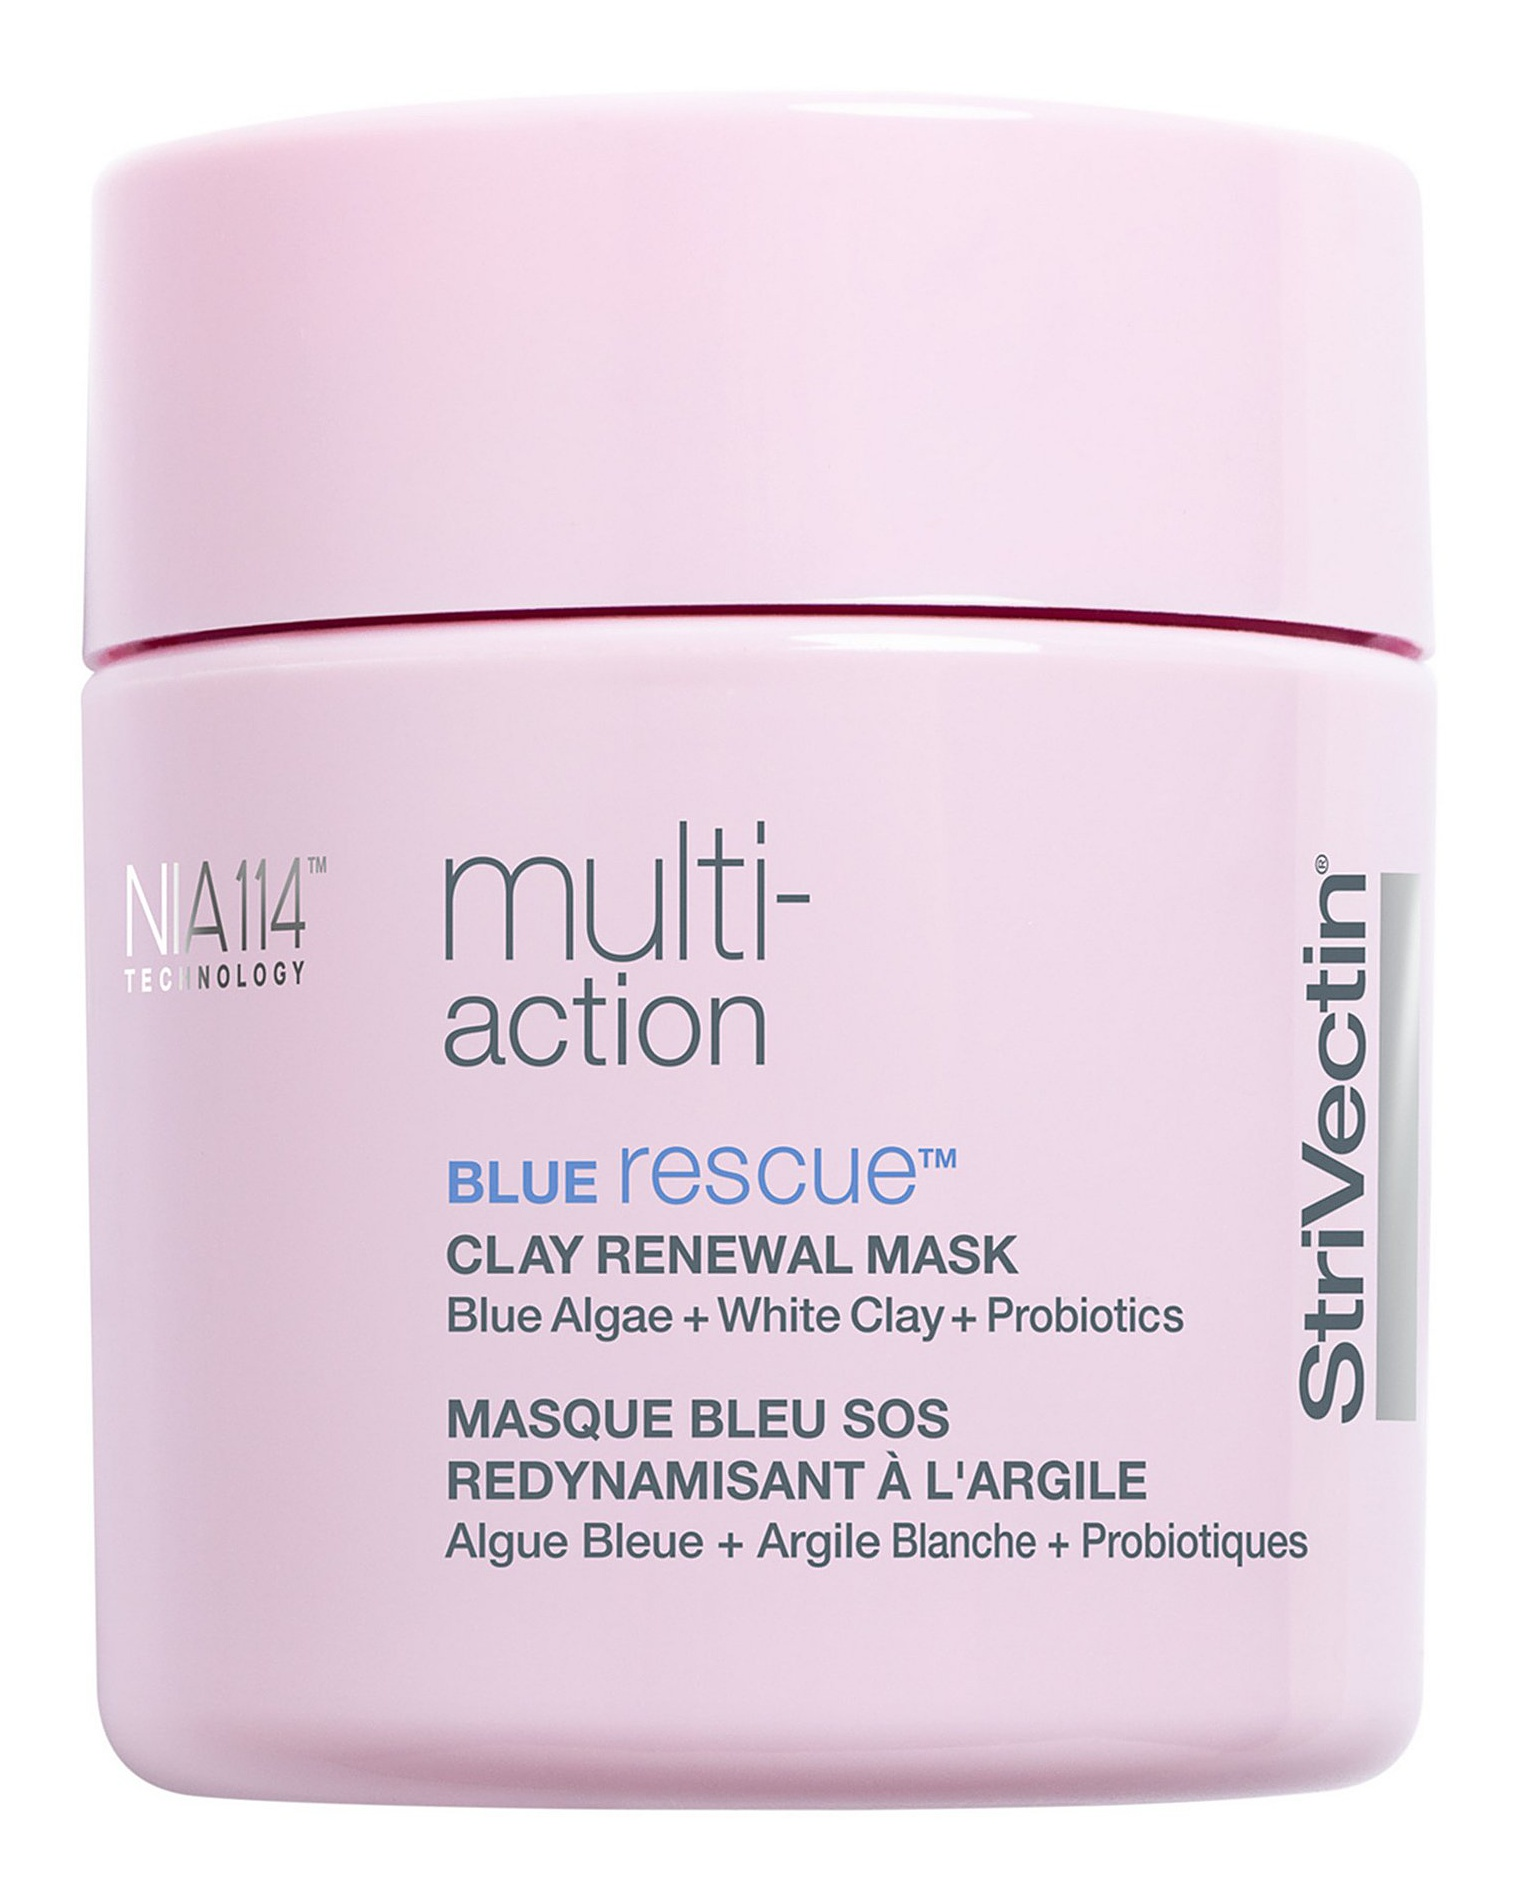 StriVectin Blue Rescue Clay Renewal Mask